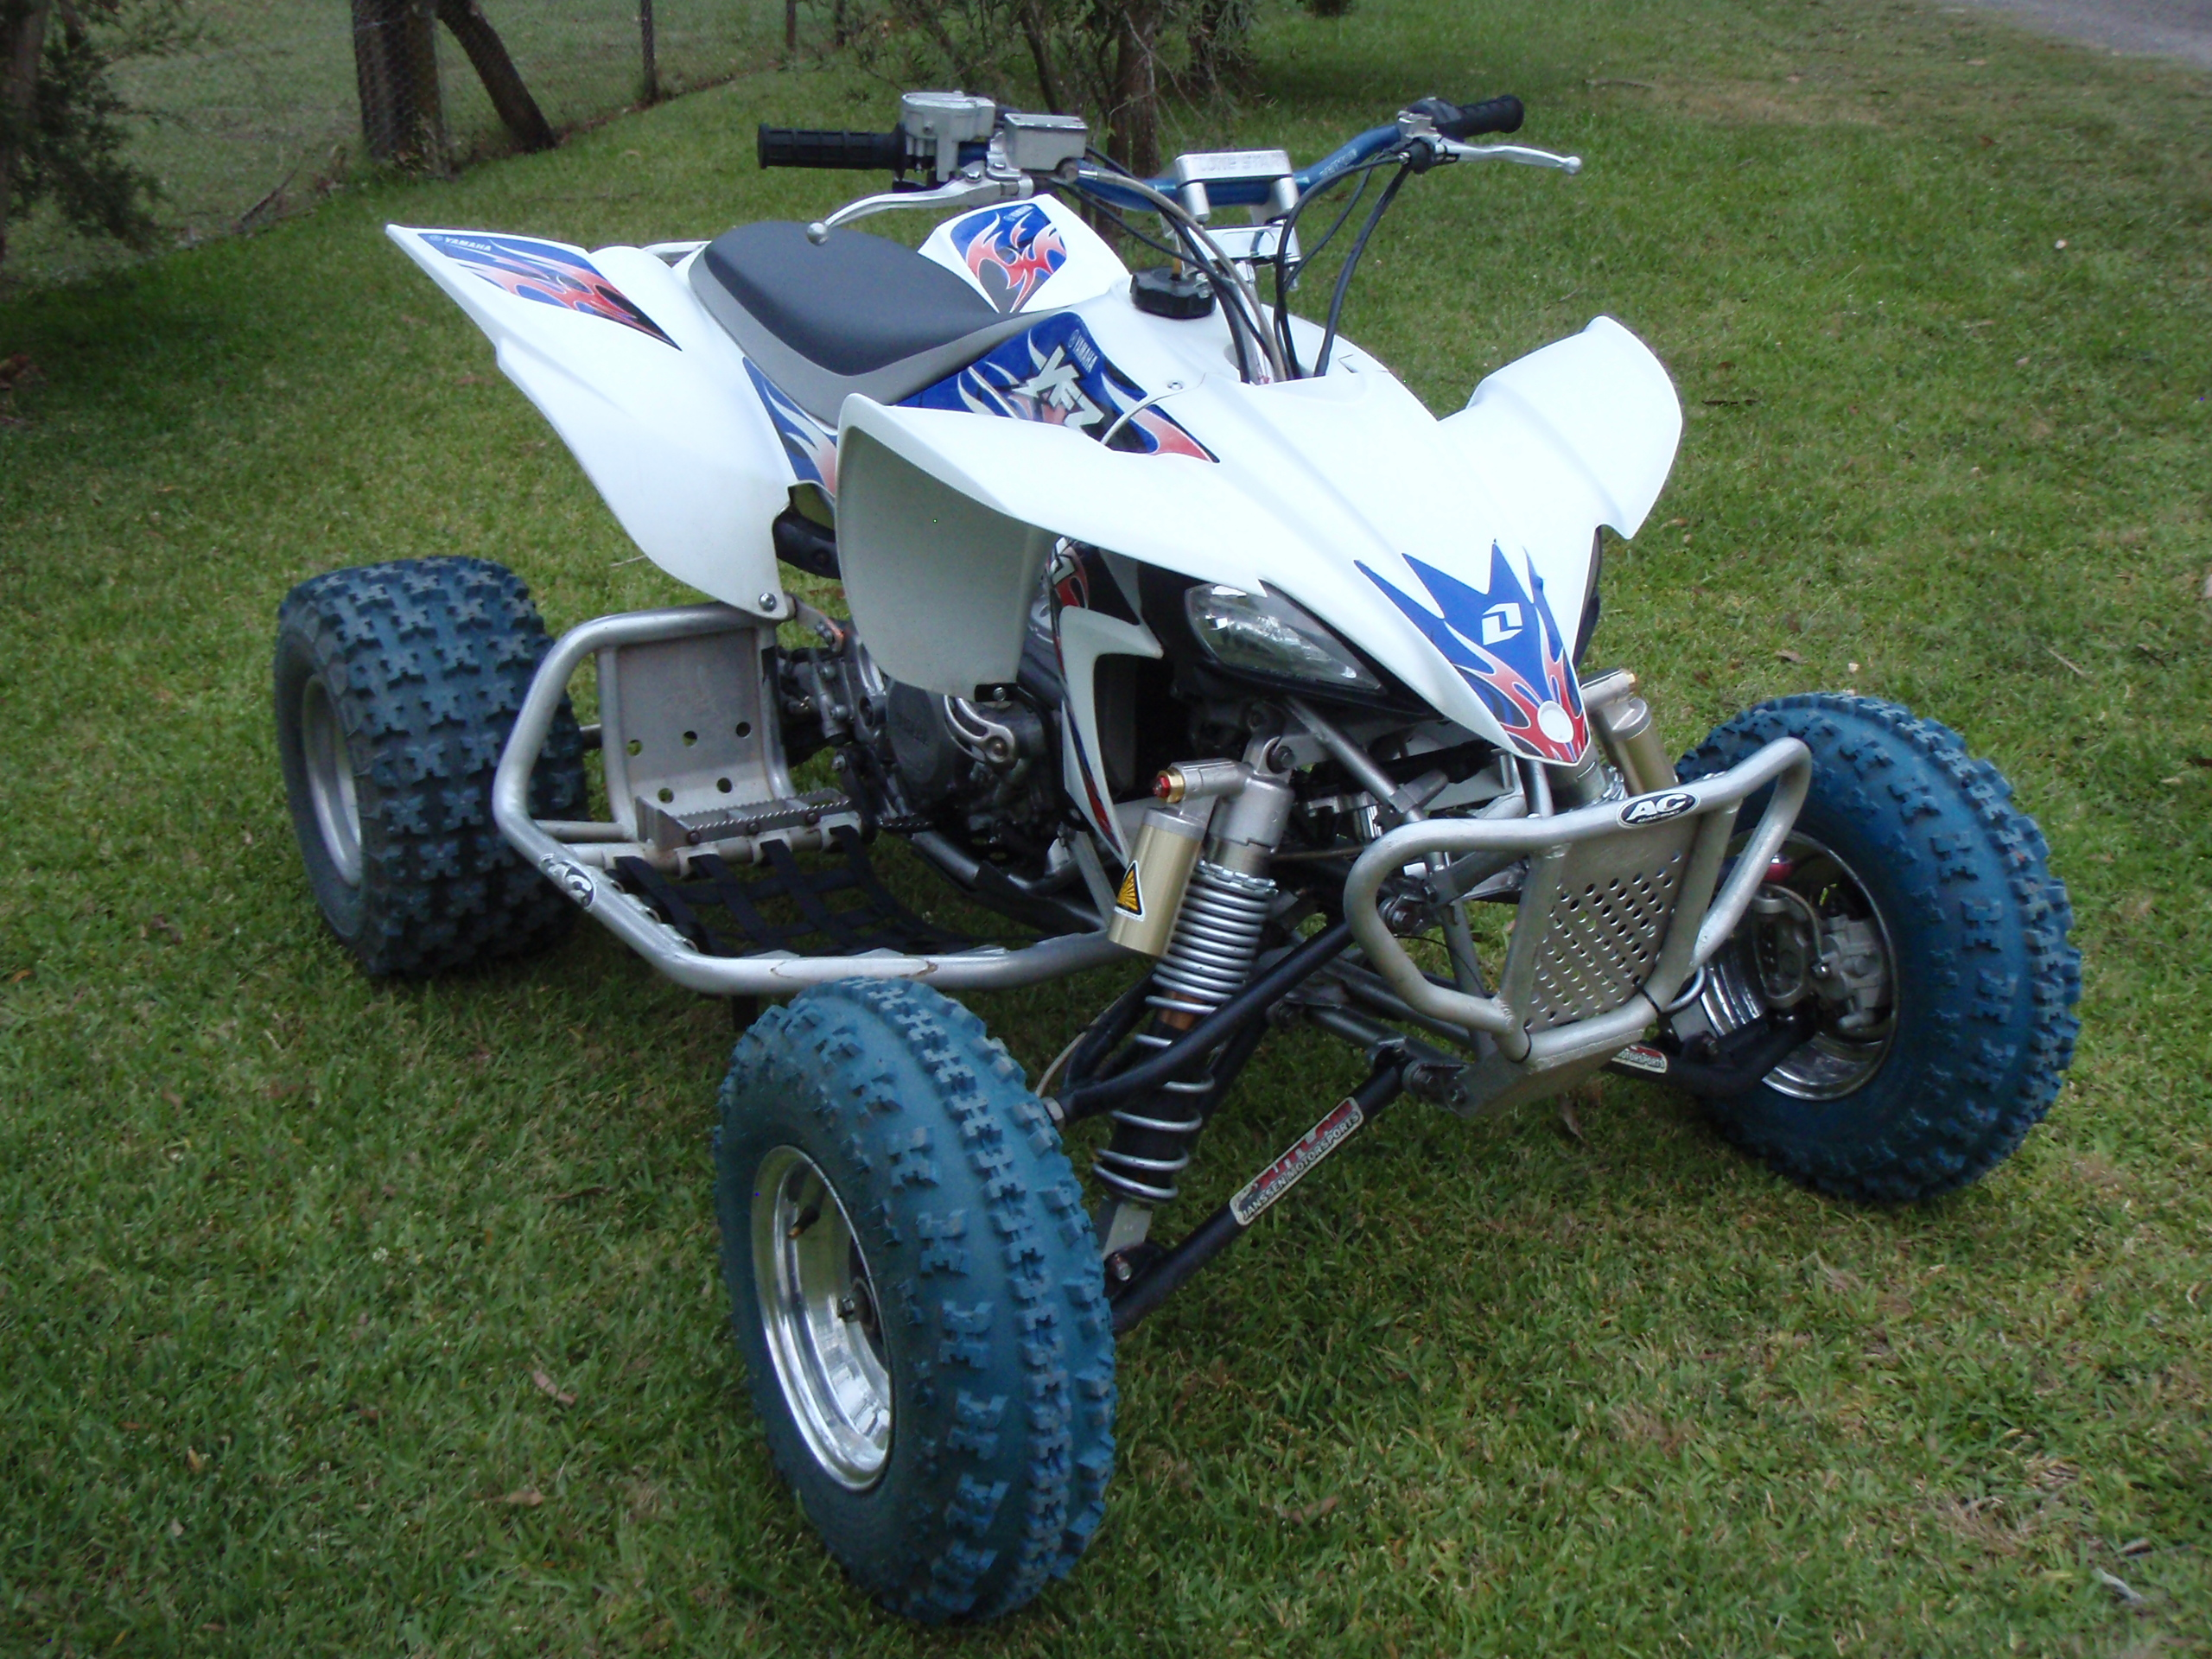 2007 yfz 450 exhaust - 2007 Yfz450 Motorcycles for sale